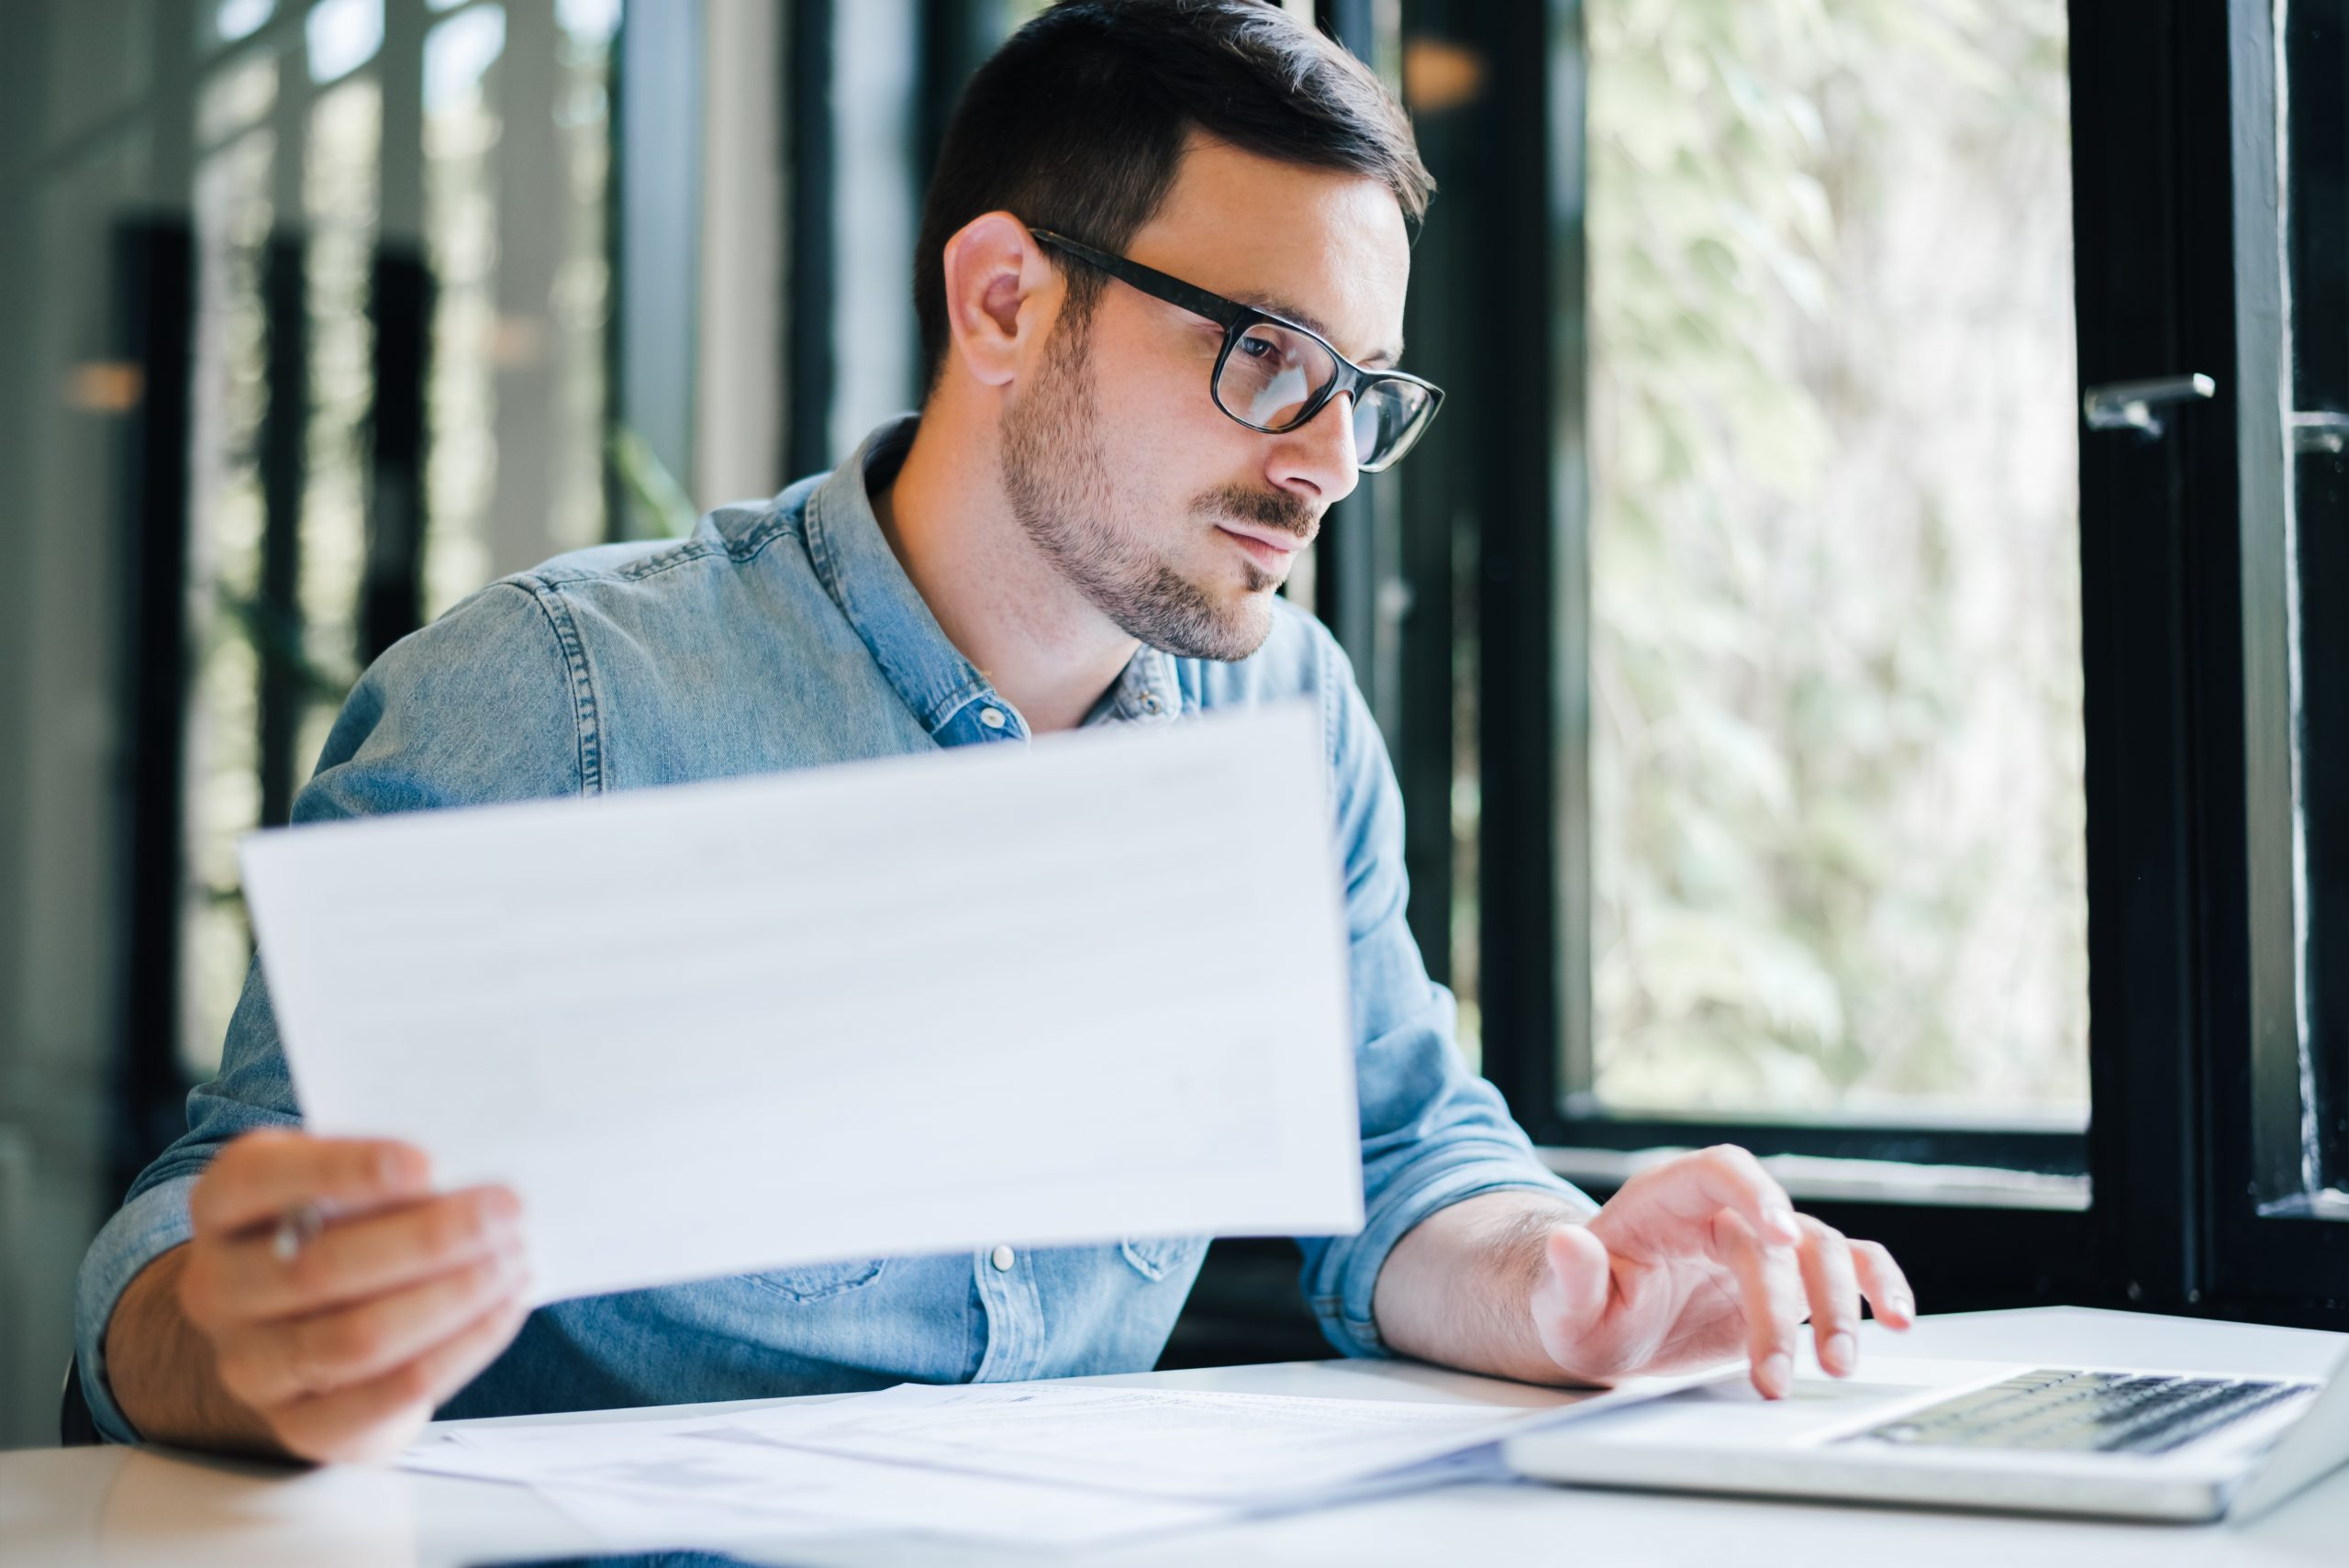 Serious Pensive Thoughtful Focused Young Casual Business Accountant Bookkeeper In Office Looking At And Working With Laptop And Income Tax Return Papers And Documents